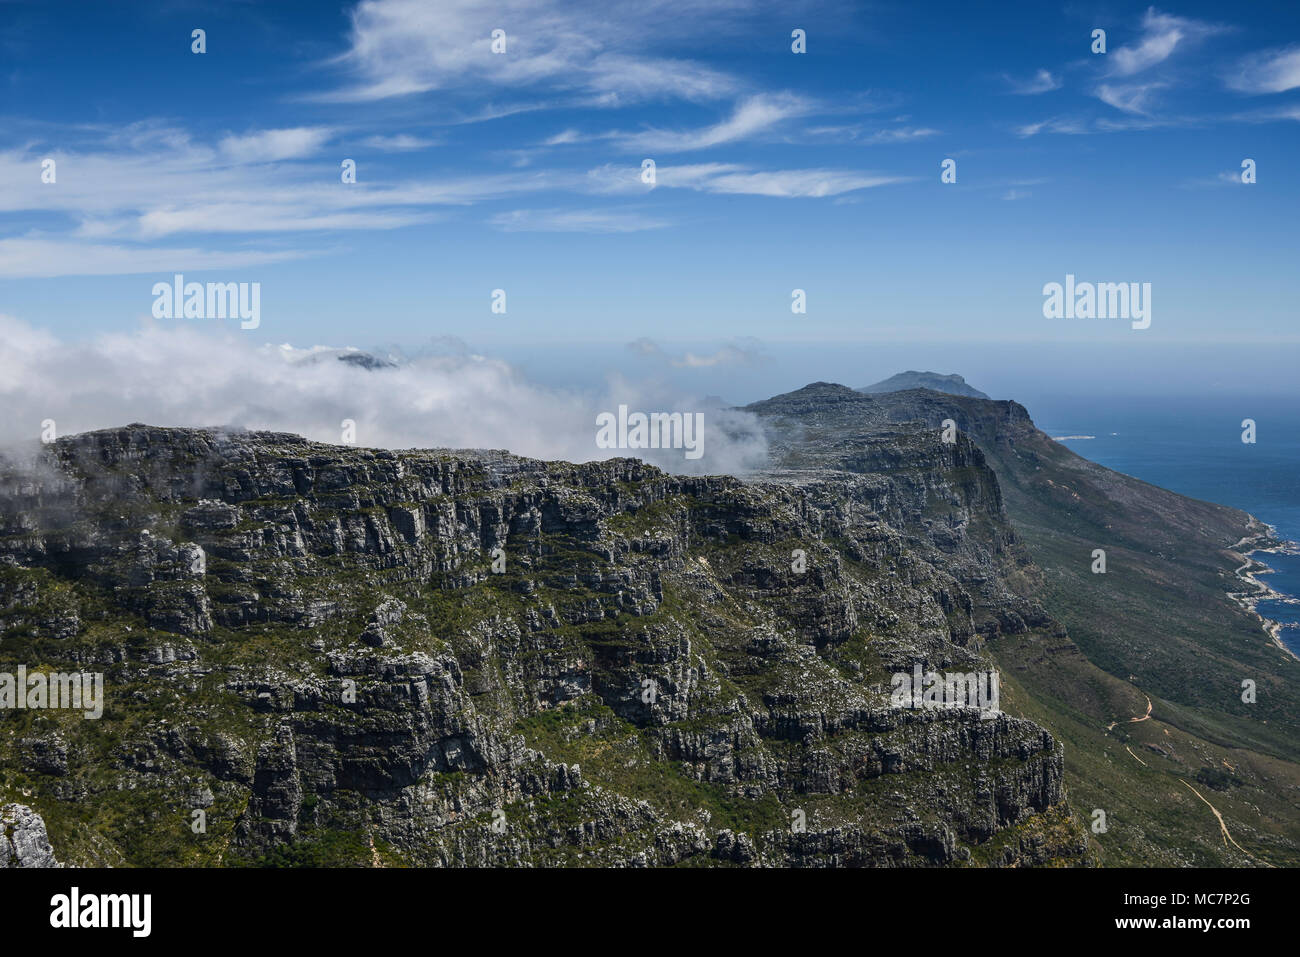 Orographic clouds sitting on the top of Table Mountain, South Africa - Stock Image